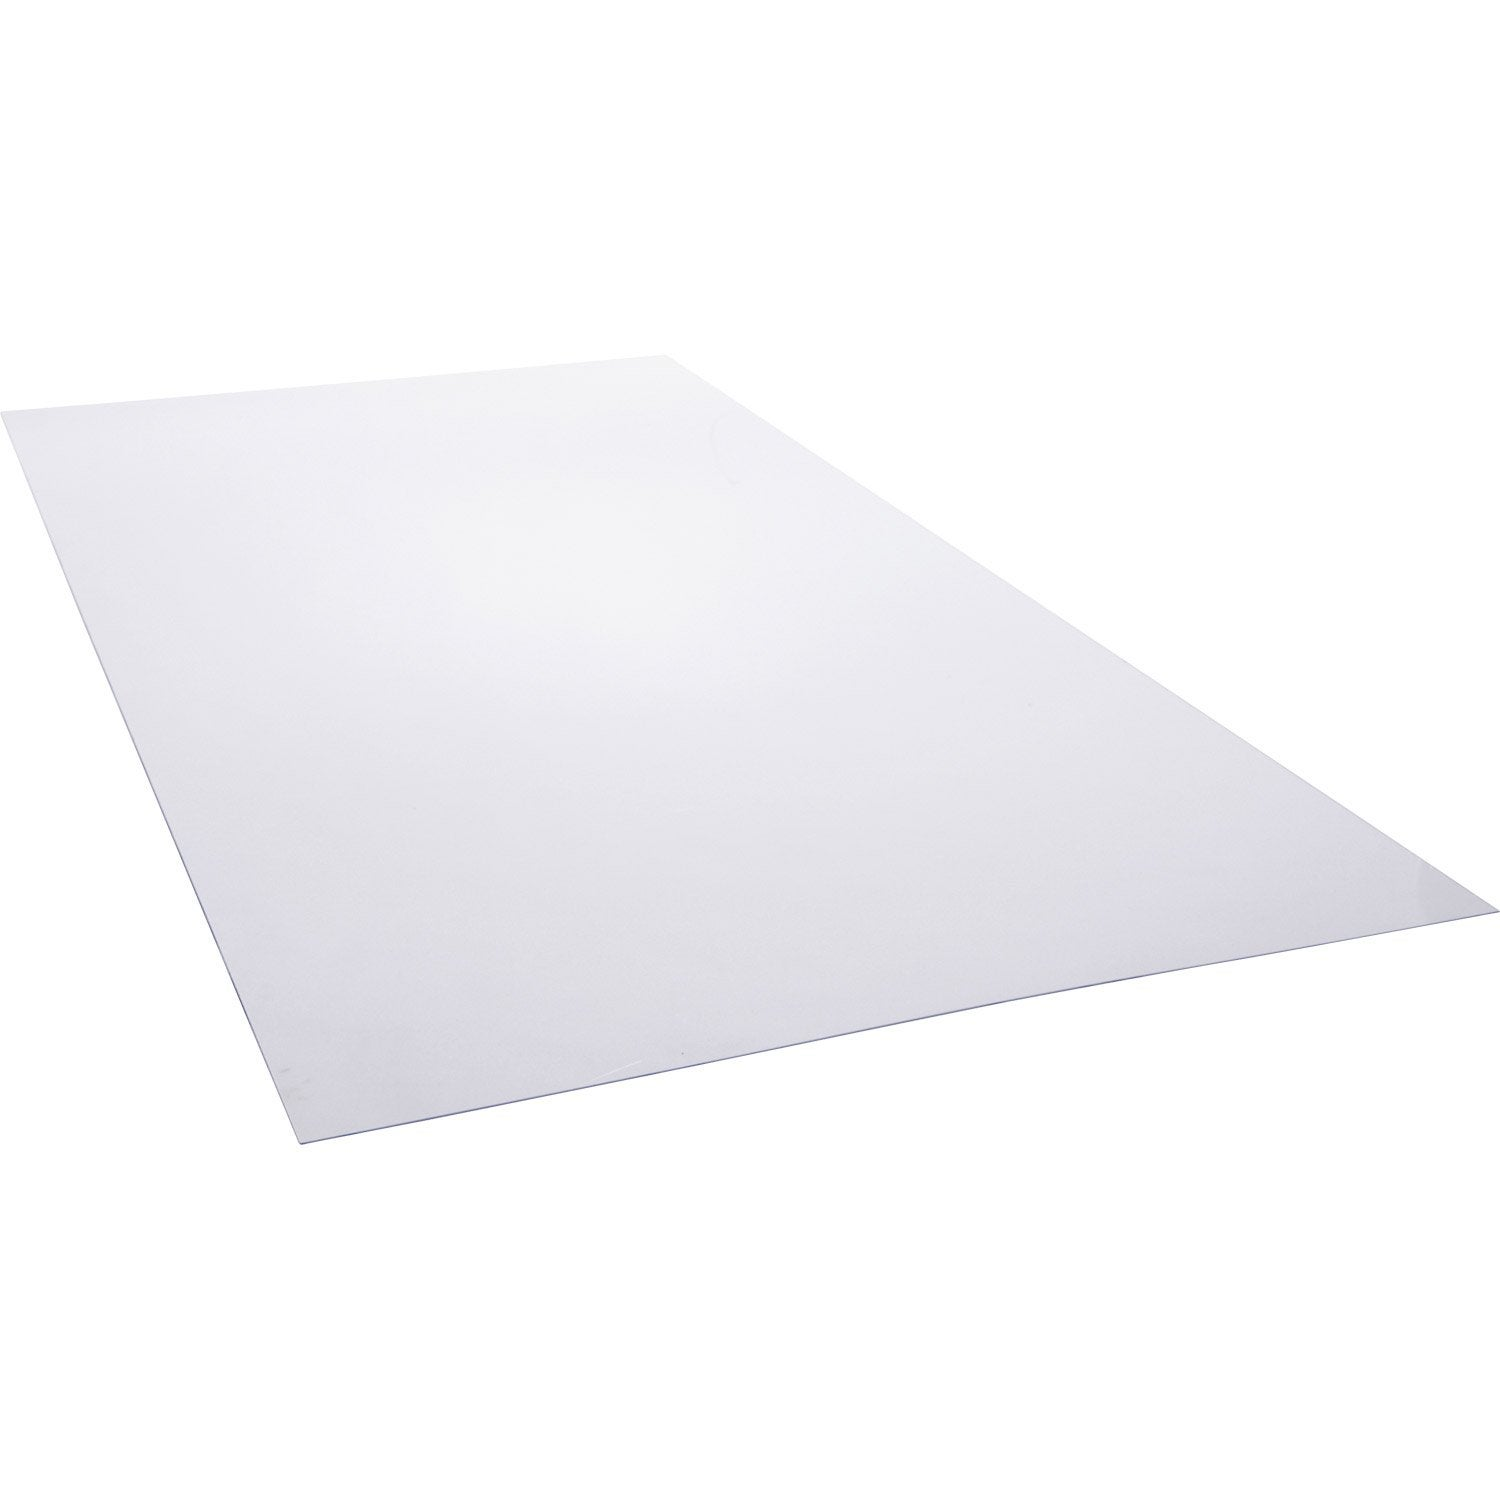 Plaque de verre synth tique polystyr ne 200x100cm p 2 for Polystyrene extrude leroy merlin